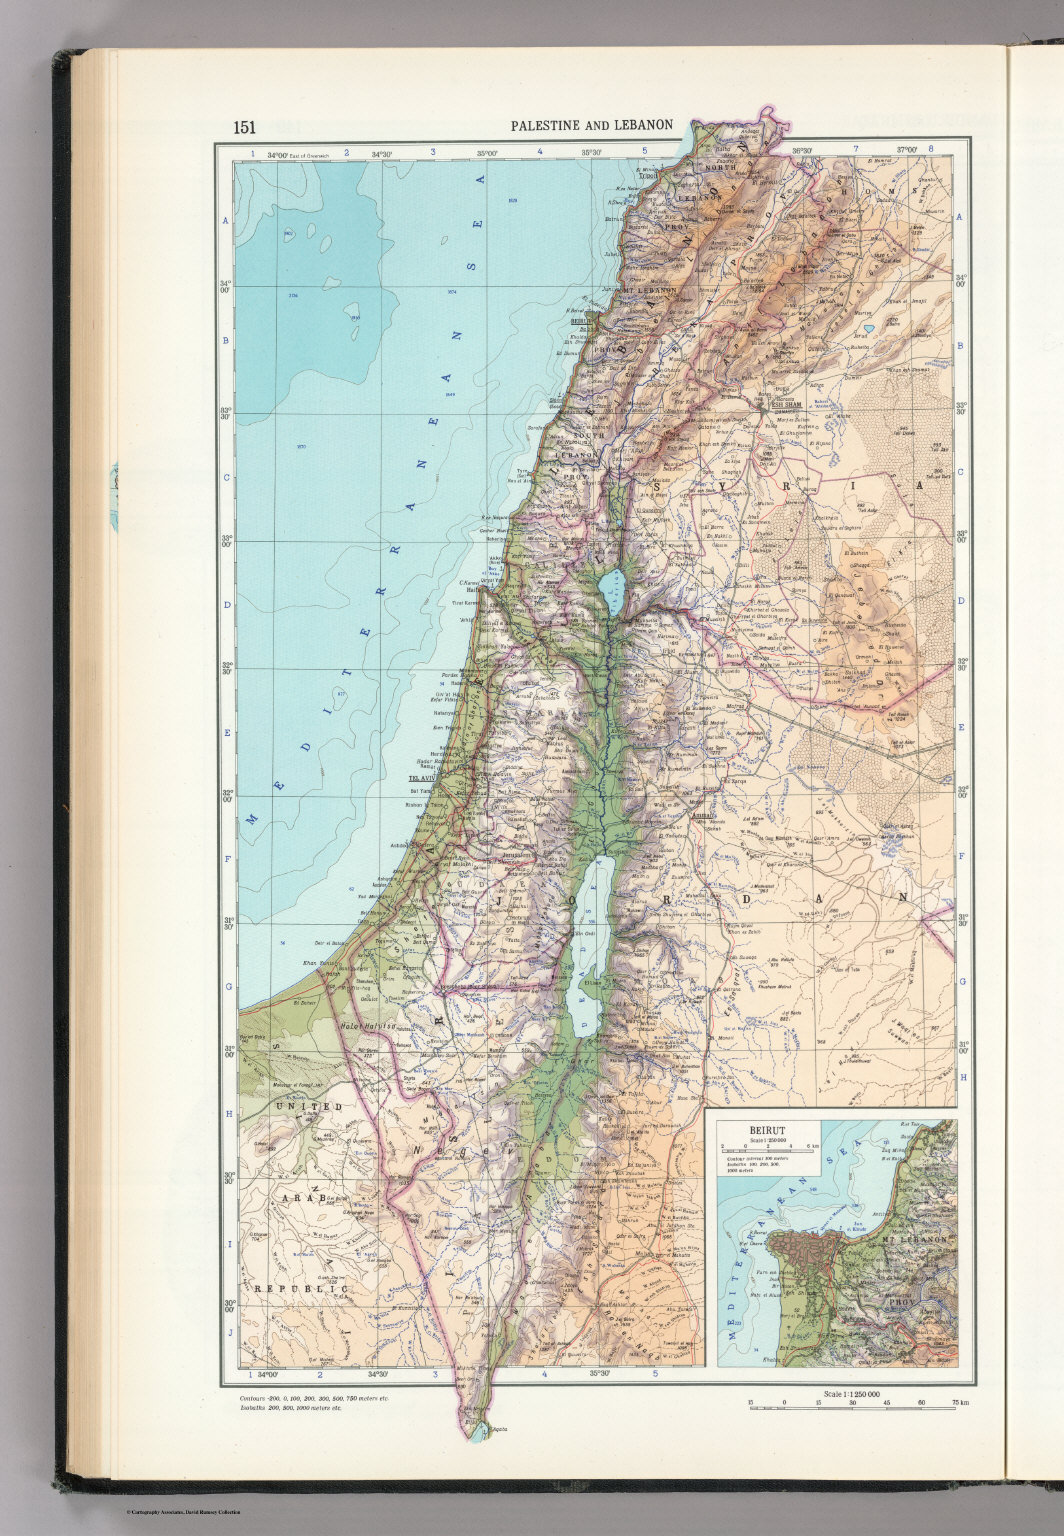 151 palestine and lebanon the world atlas david rumsey palestine and lebanon the world atlas gumiabroncs Images